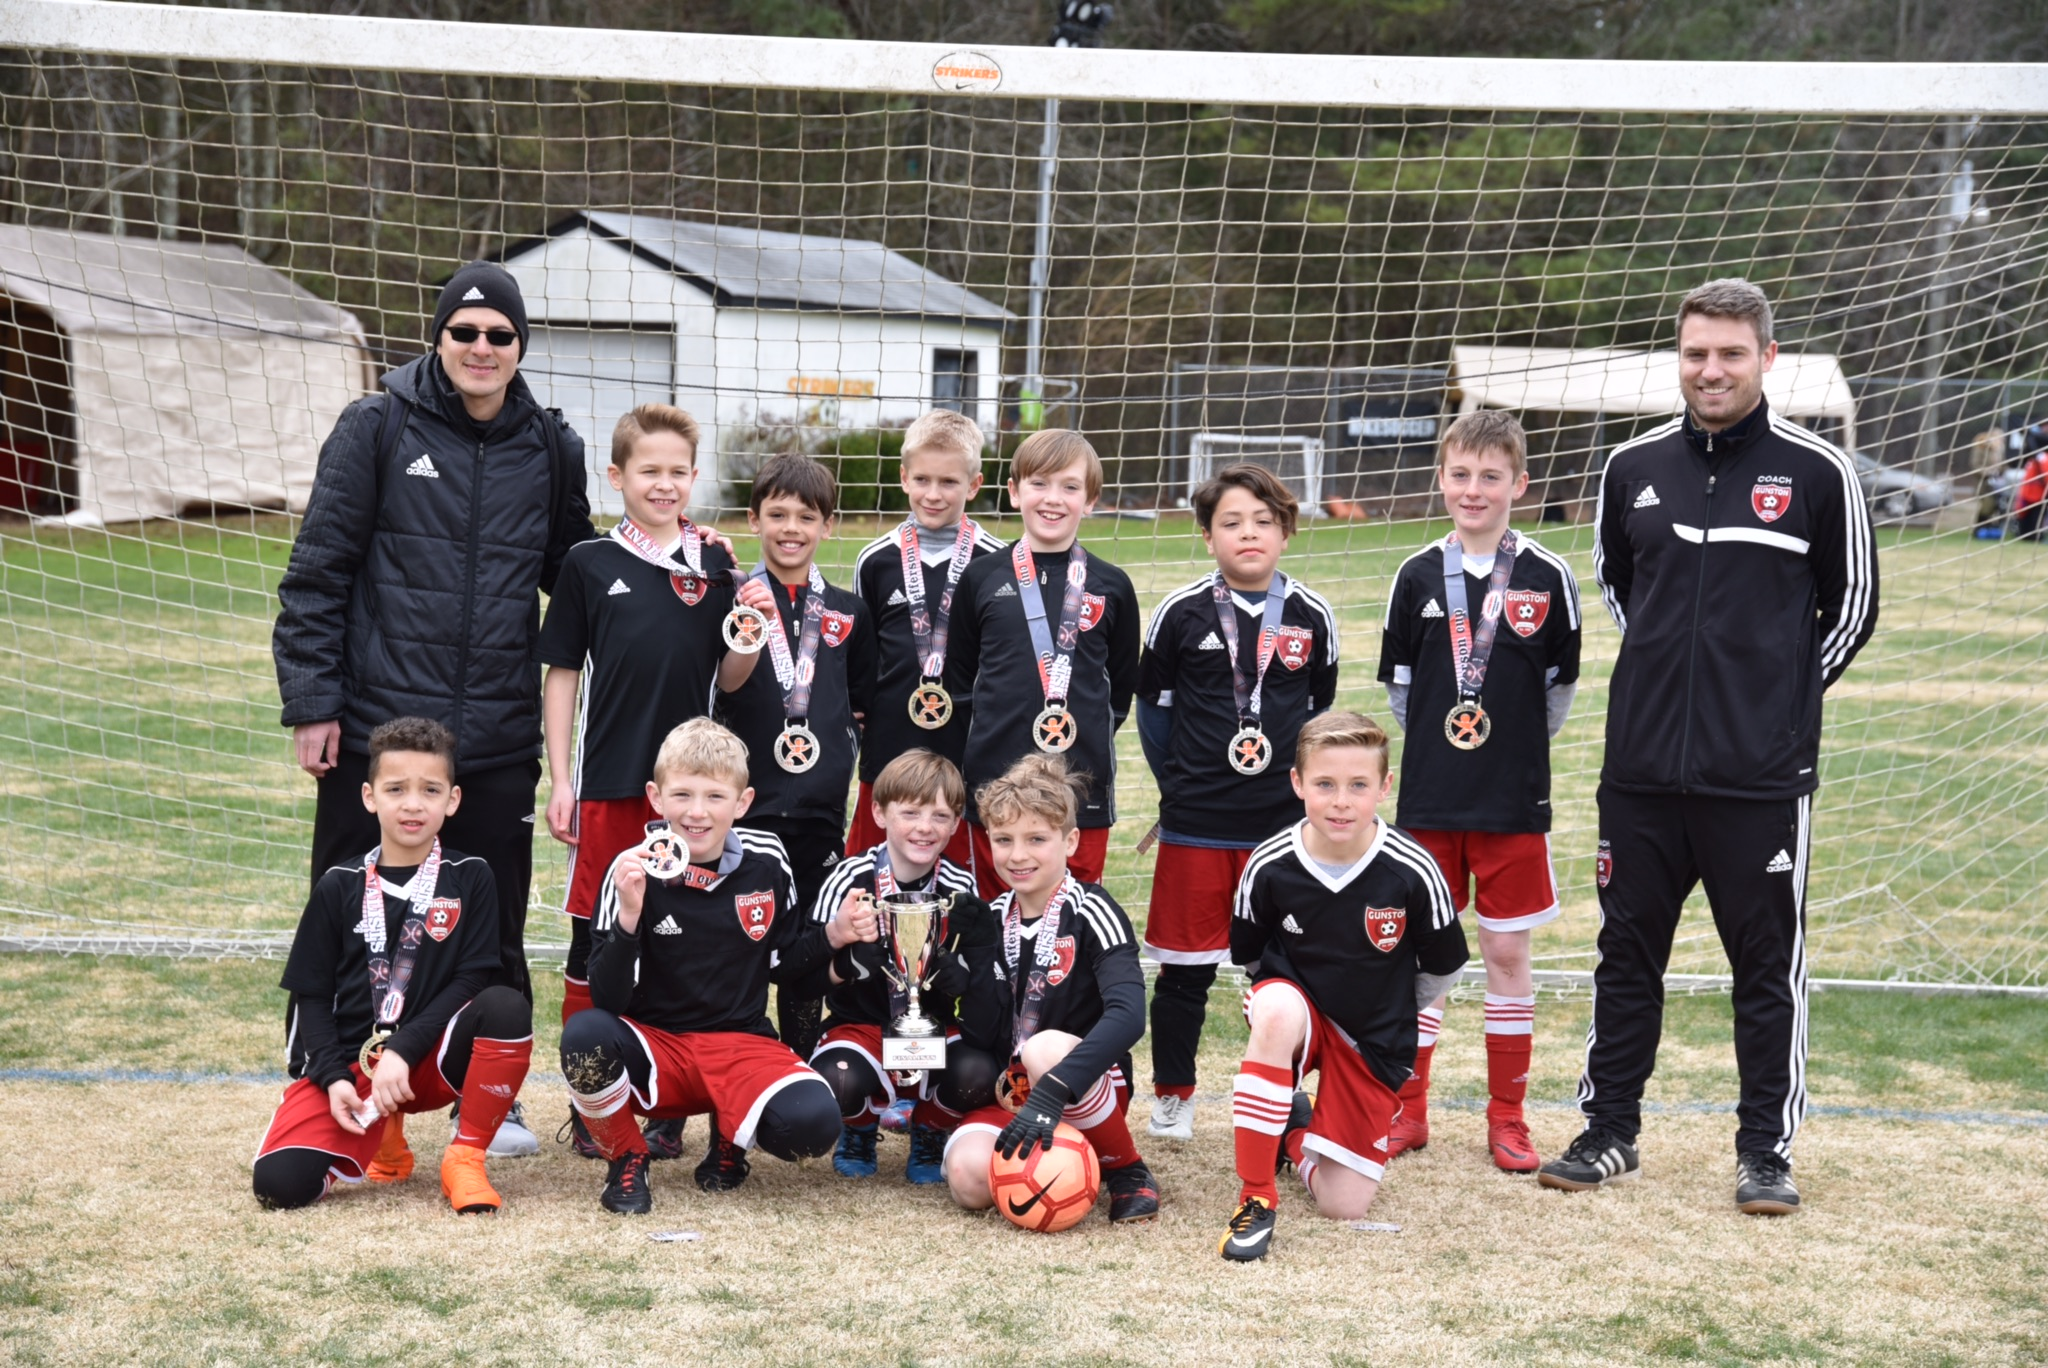 2008 Boys Red Team Jefferson Cup - Finalists